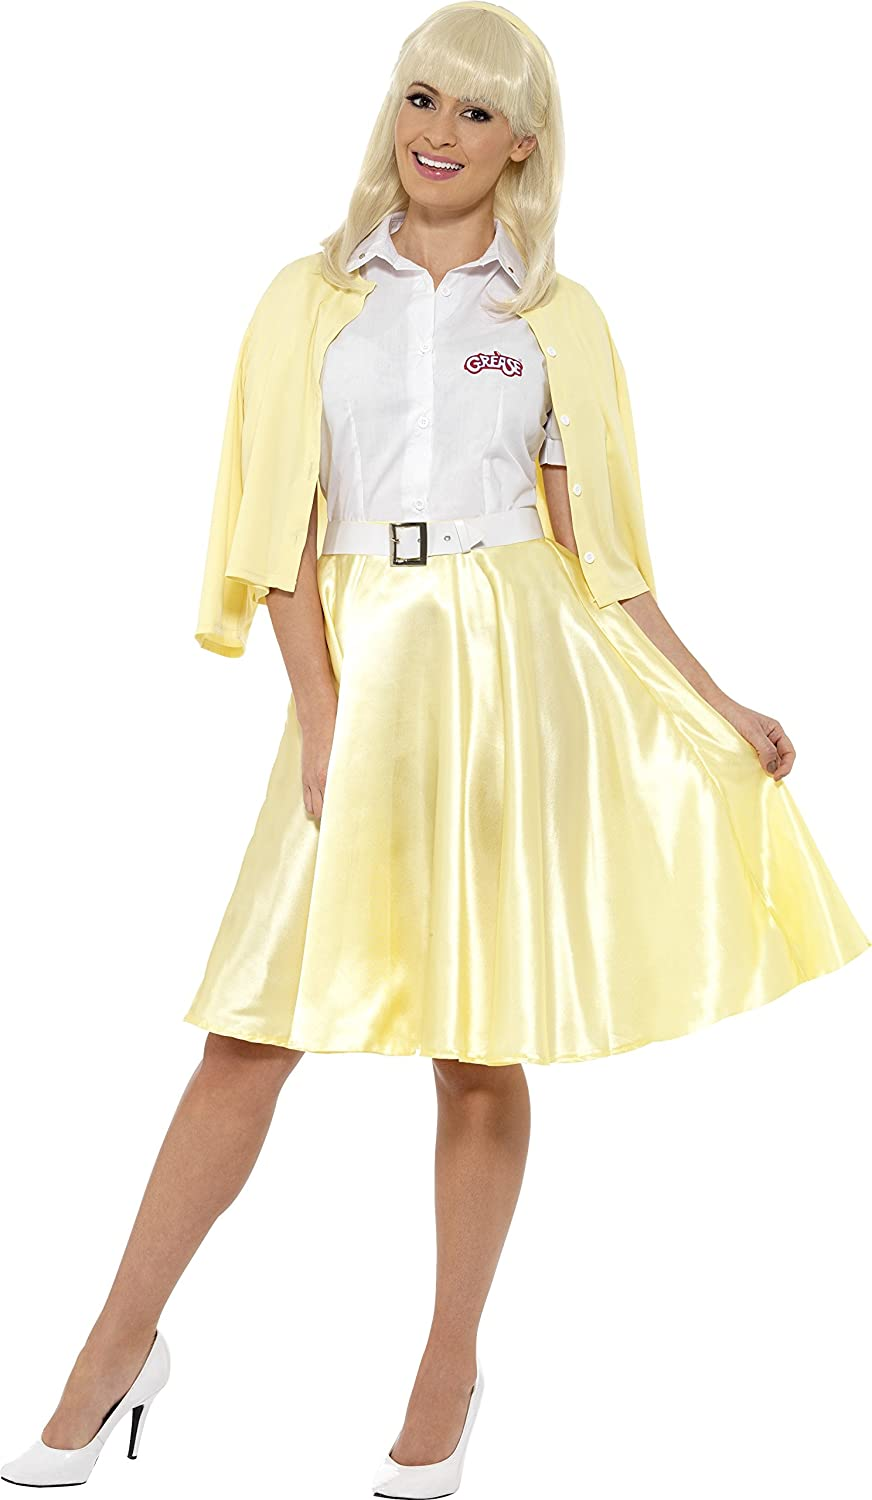 1950s Costumes- Poodle Skirts, Grease, Monroe, Pin Up, I Love Lucy Grease Good Sandy Costume (Large) $38.58 AT vintagedancer.com